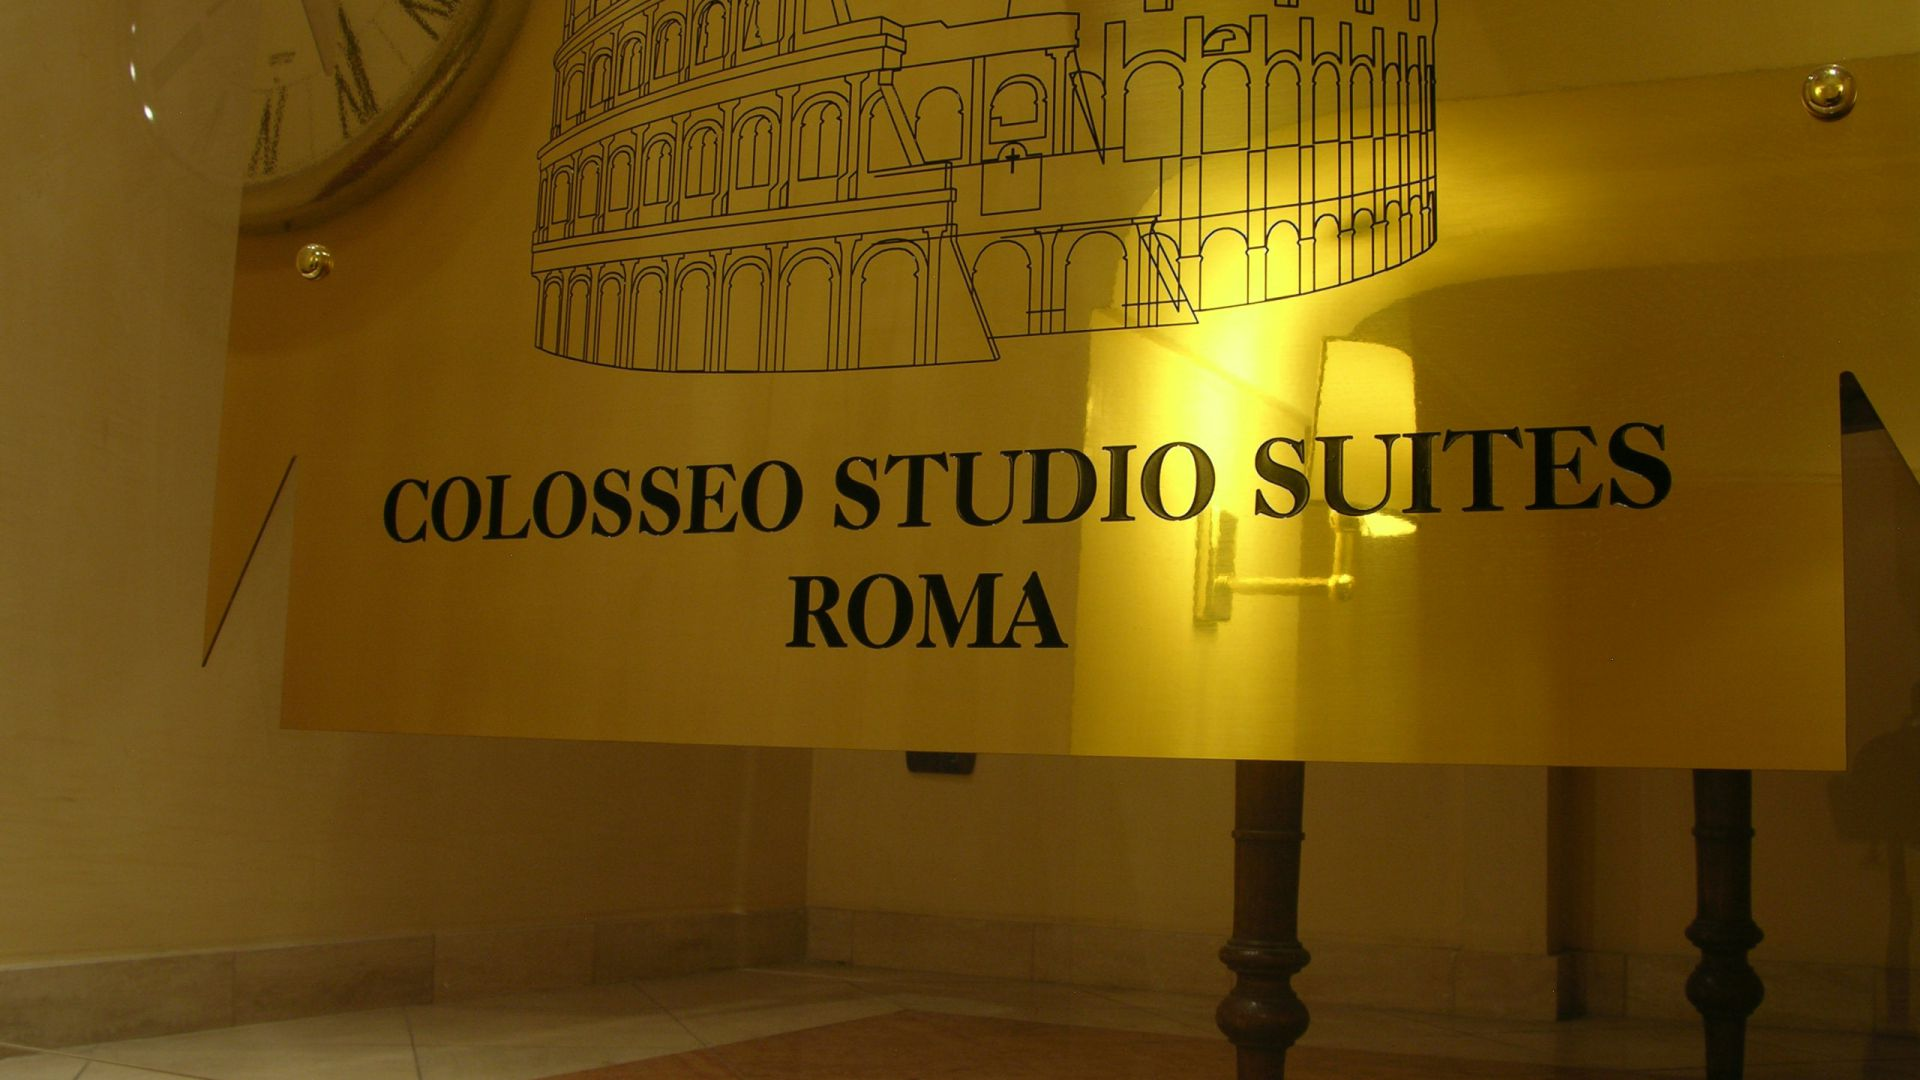 colosseo-suites-roma-externo-03